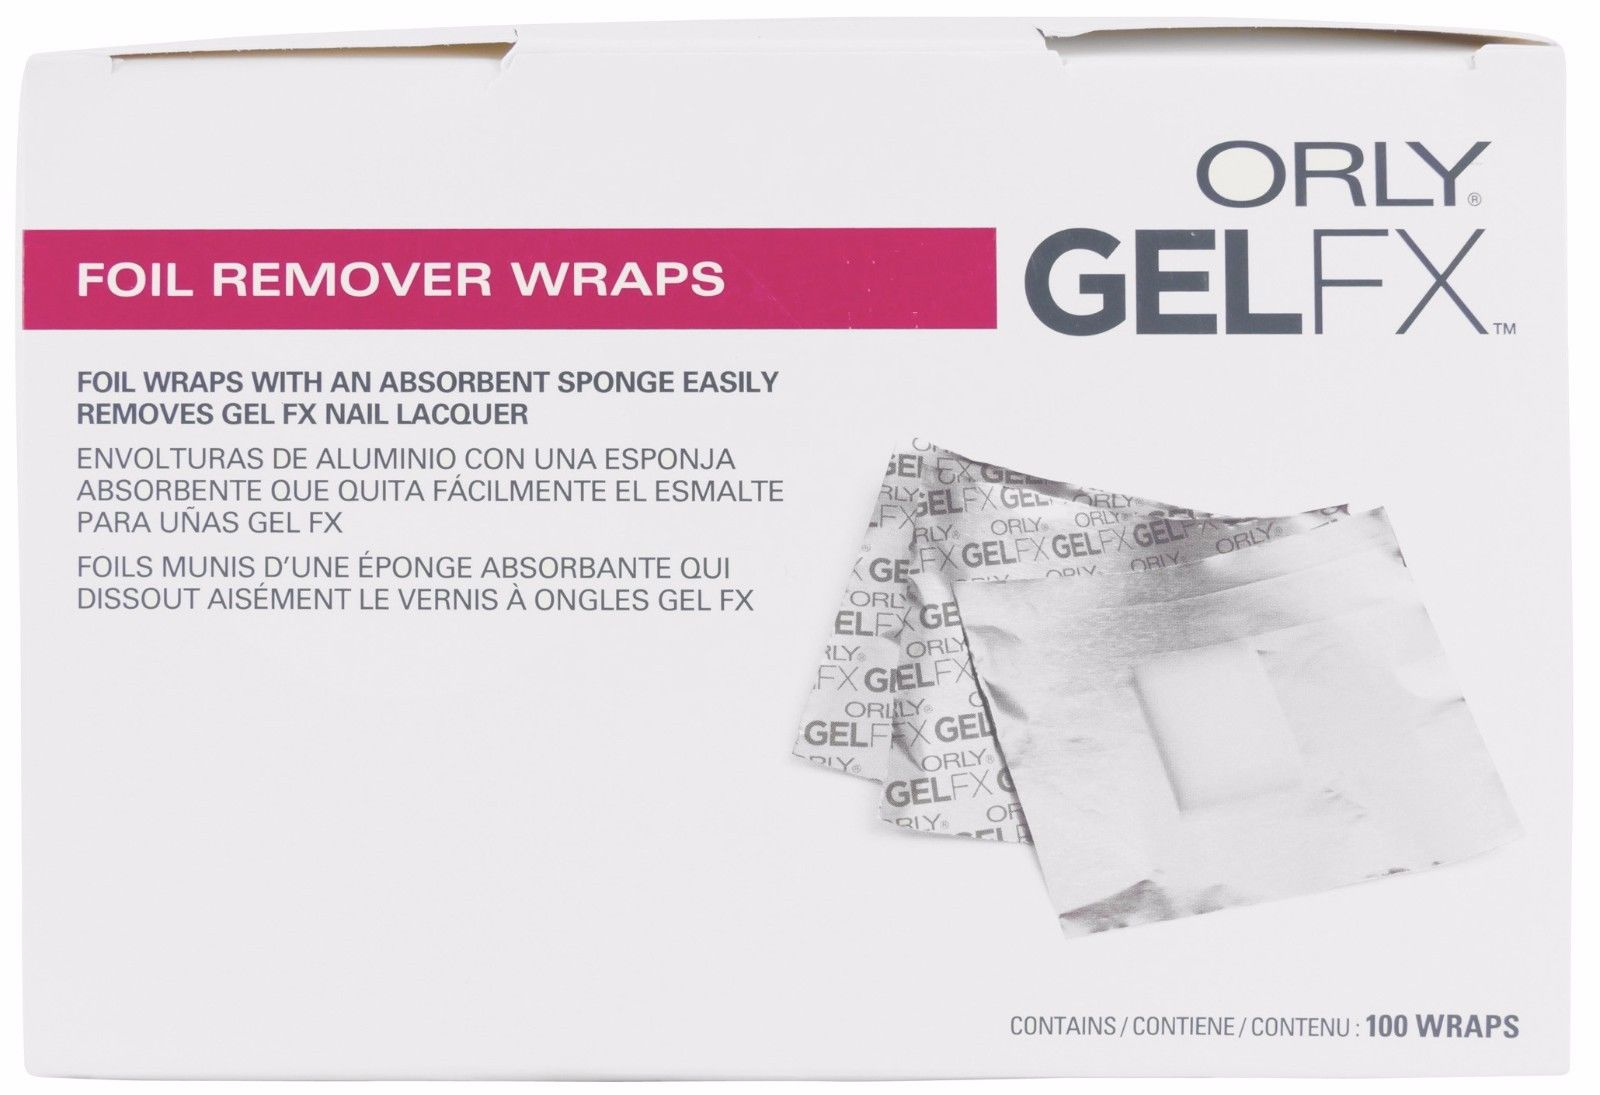 Afbeelding van ORLY Foil Remover Wraps 100 pack